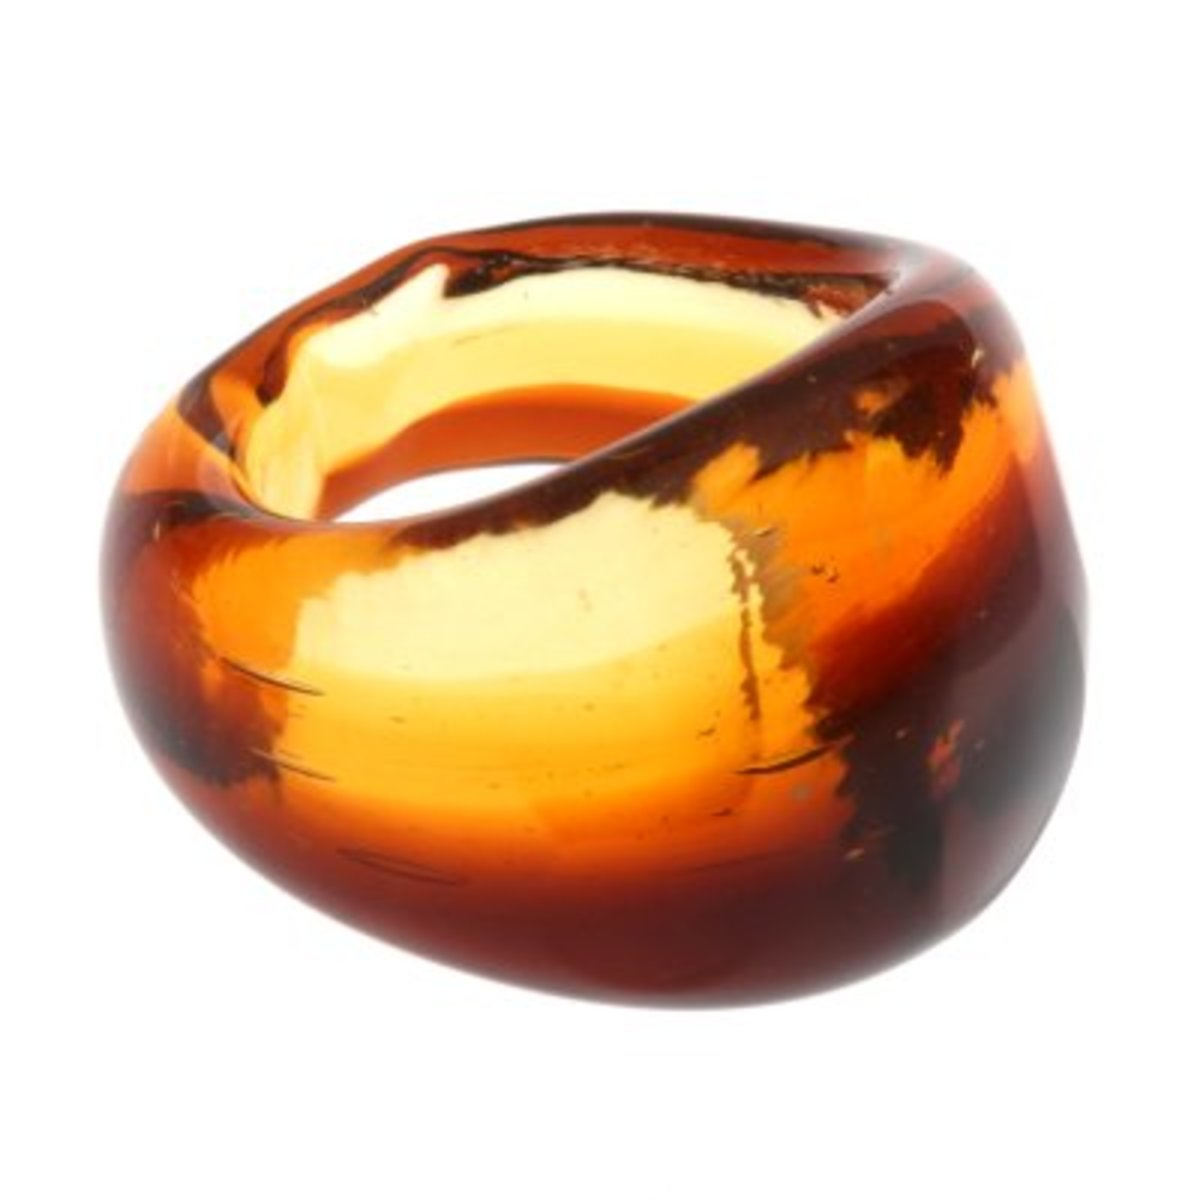 An Amber ring